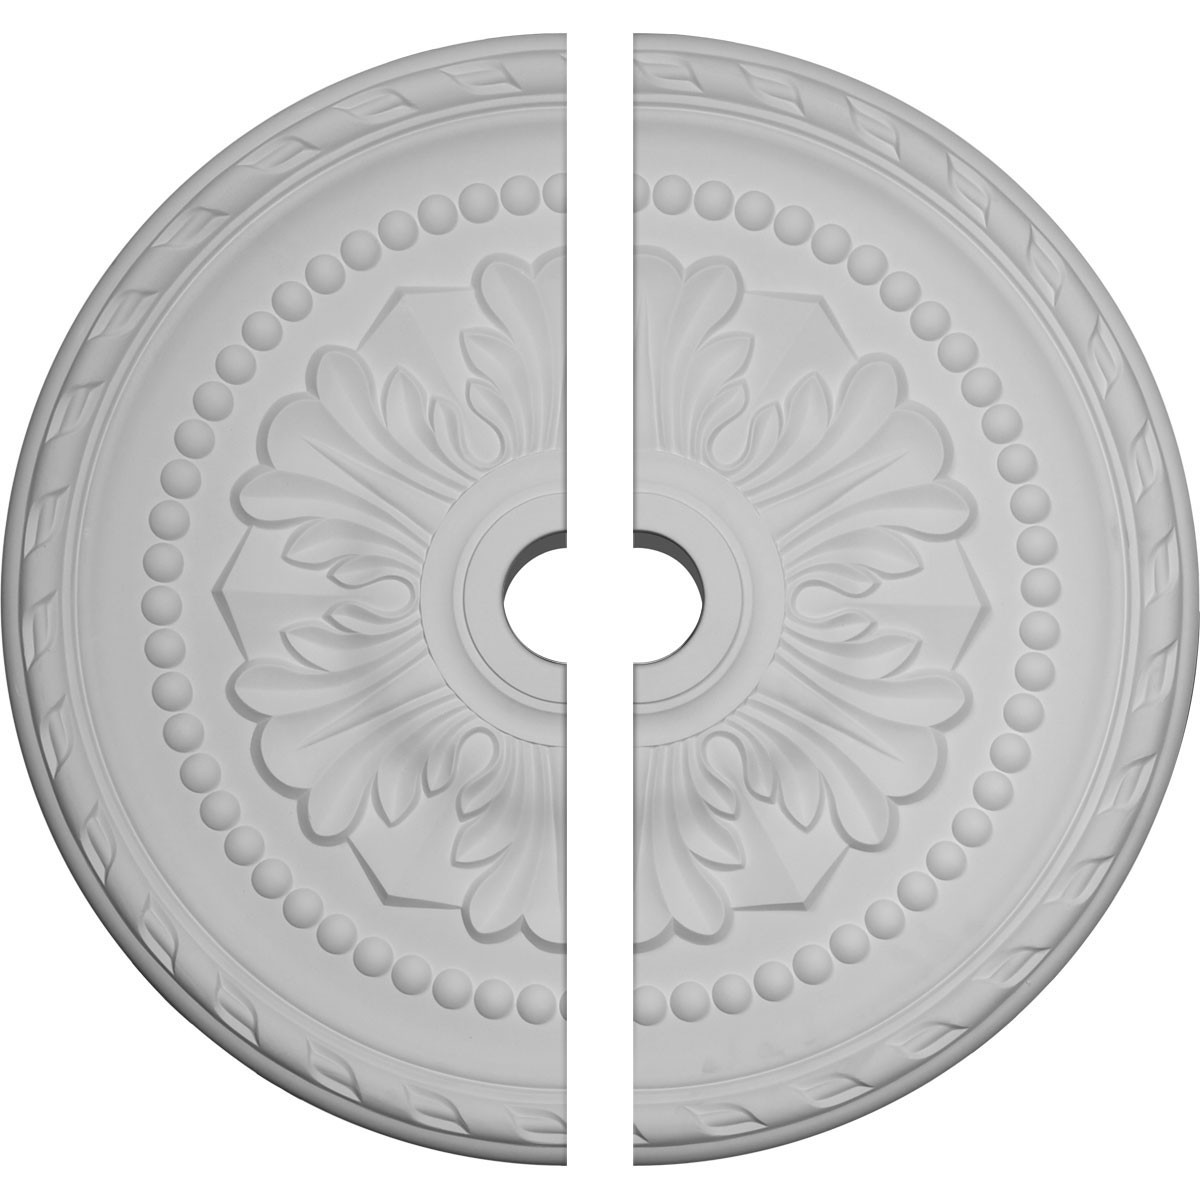 """EM-CM31PM2 - 31 1/2""""OD x 3 5/8""""ID x 1 3/4""""P Palmetto Ceiling Medallion, Two Piece (Fits Canopies up to 7 5/8"""")"""